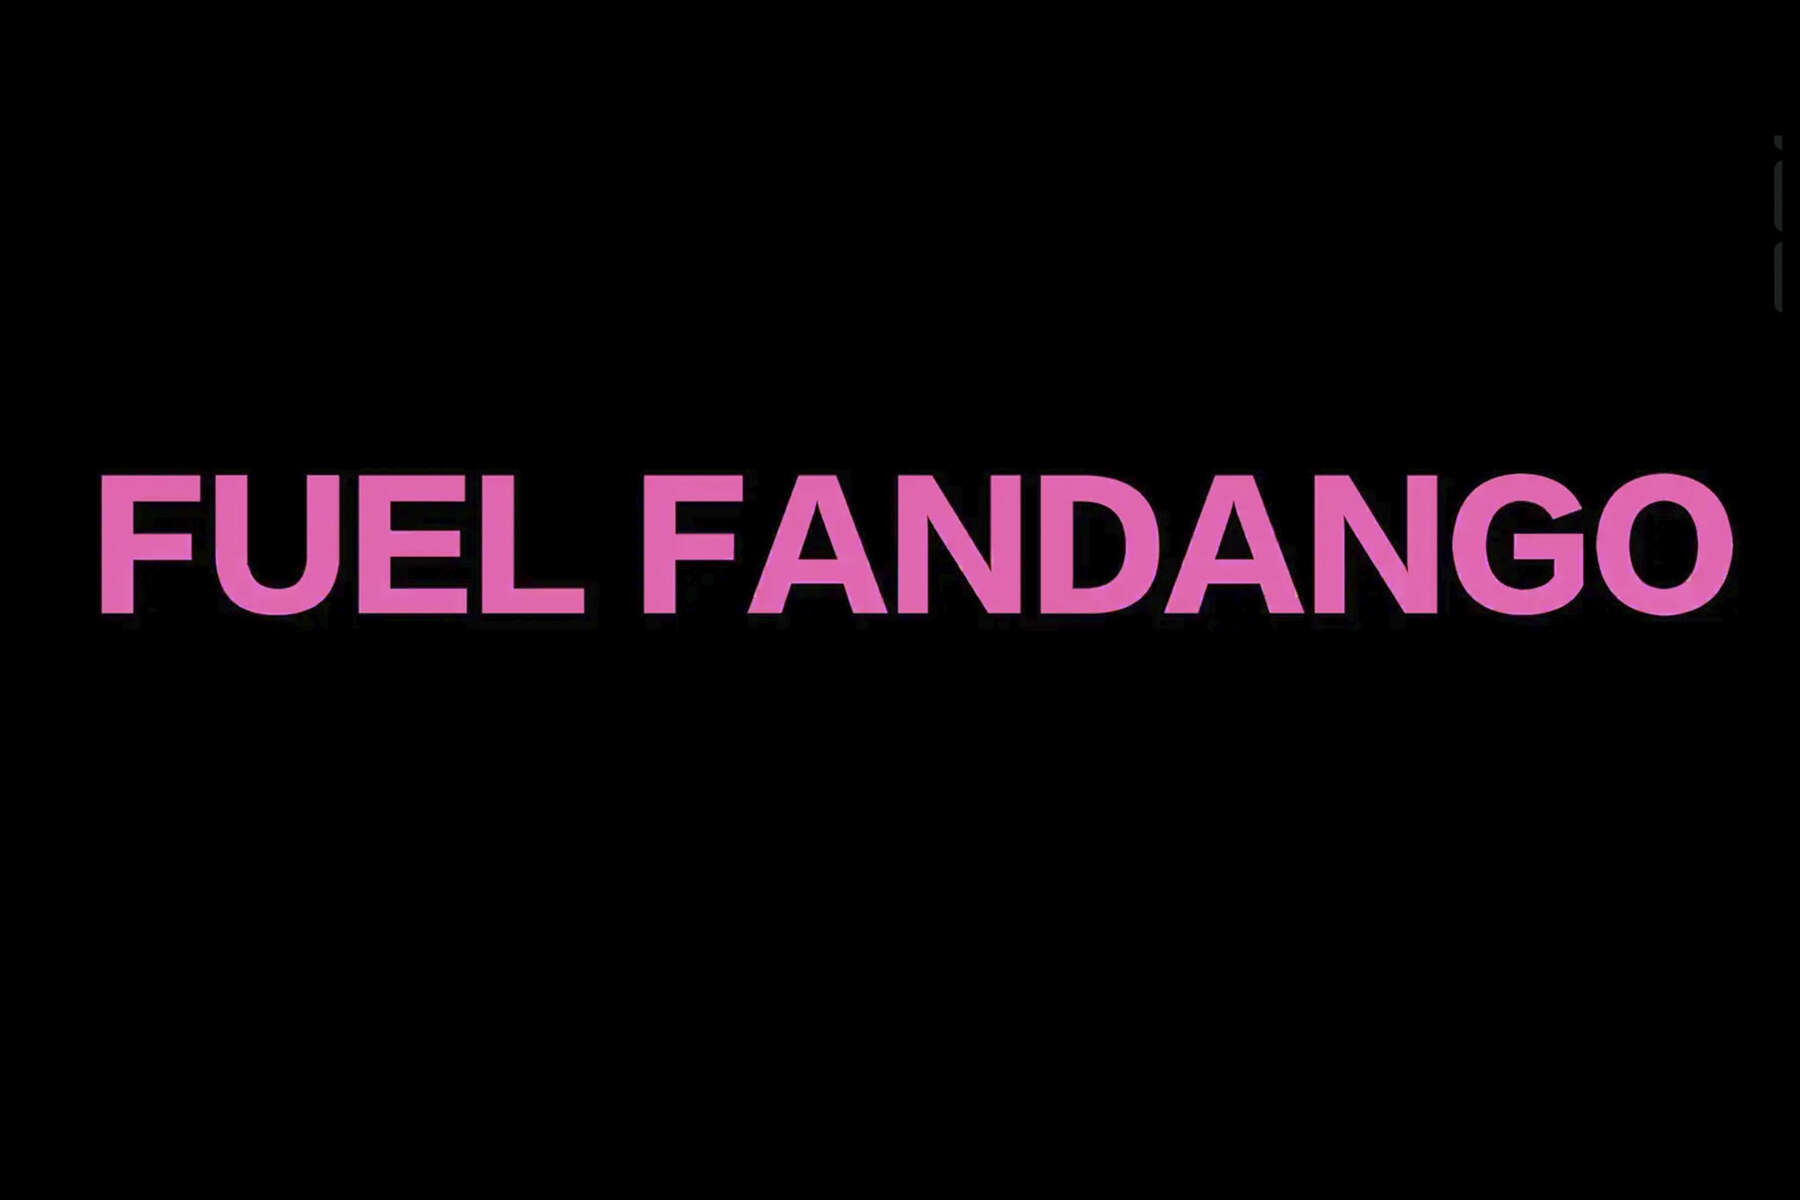 {quote}FUEL FANDANGO | SHORT FILM | RAFAEL FABRÉS: PHOTOGRAPHY | JULIAN AZCUTIA: SOUND & CINEMATOGRAPHY